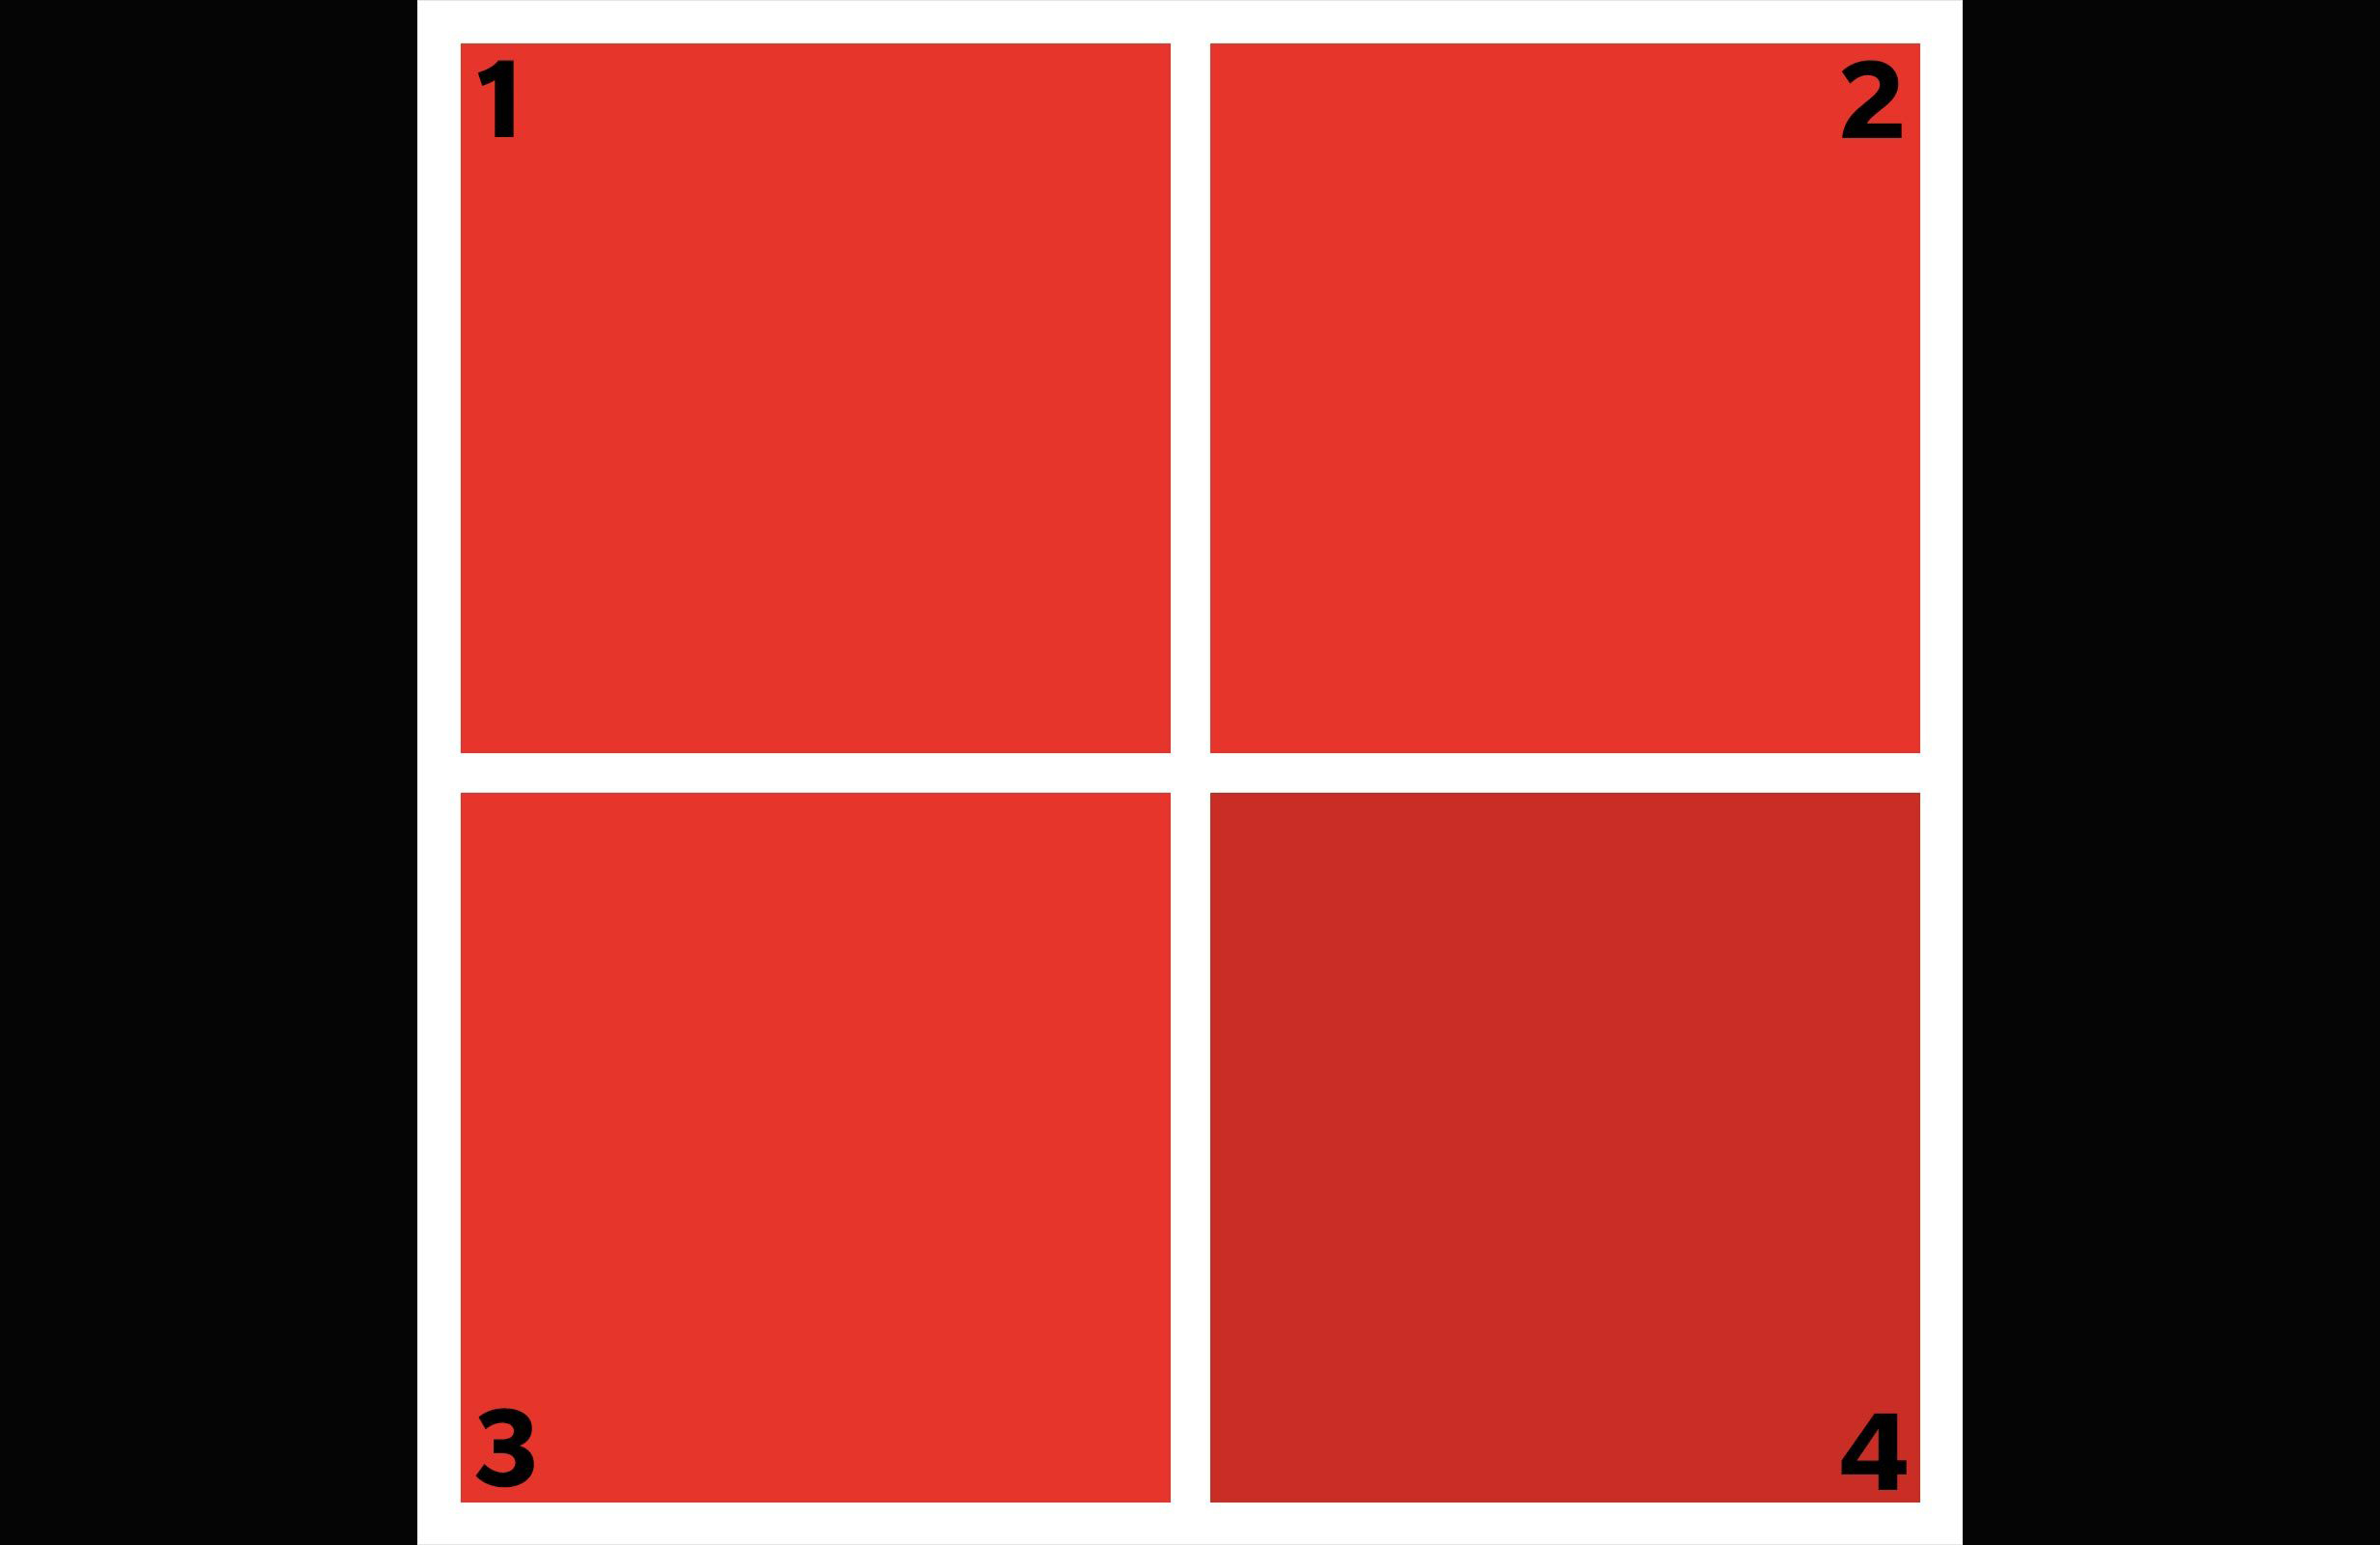 Which shade of red is different?